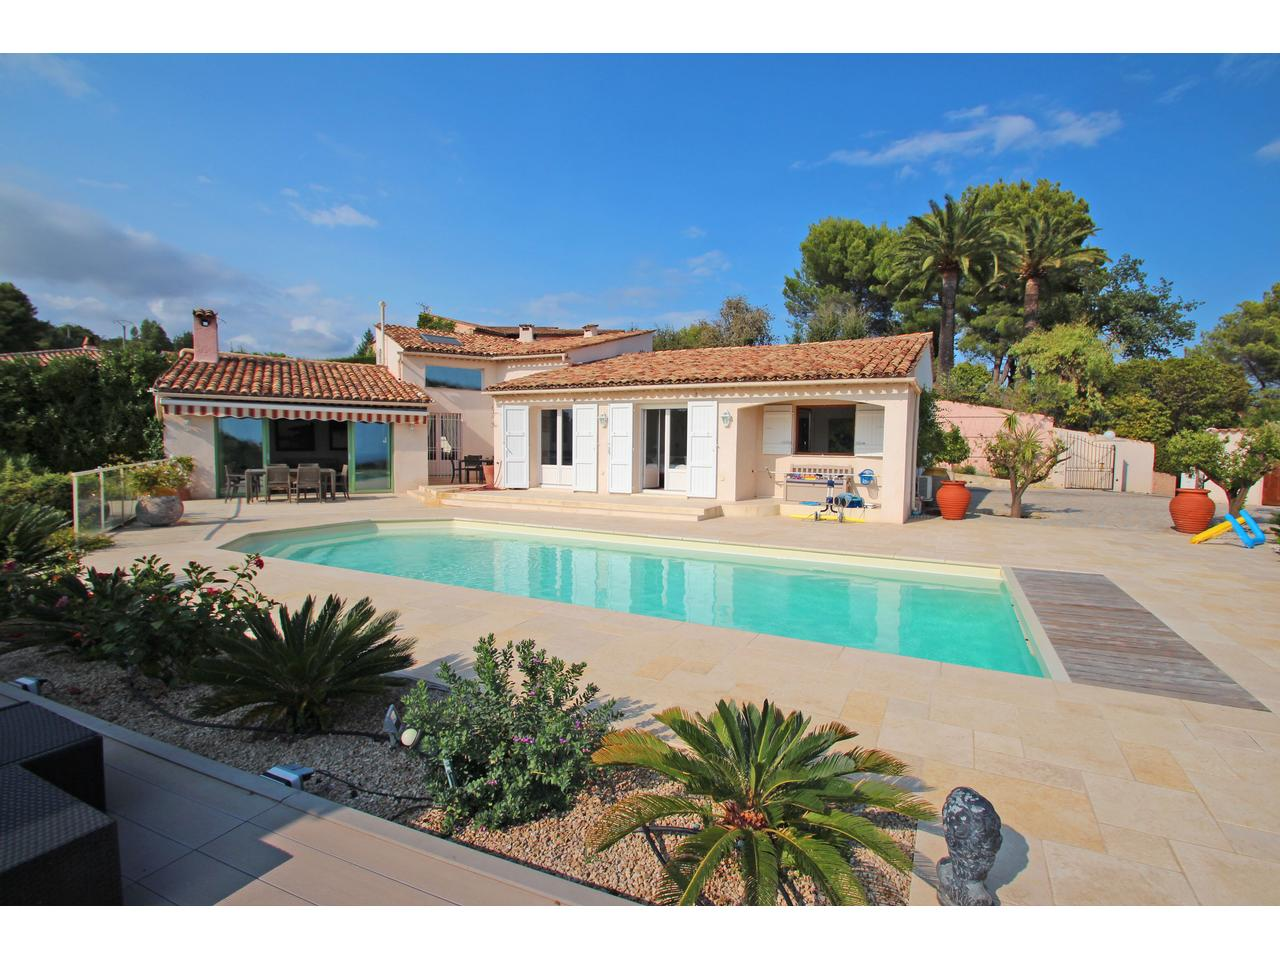 Vente Properties Listing Apartments And Houses With Nice Sea View